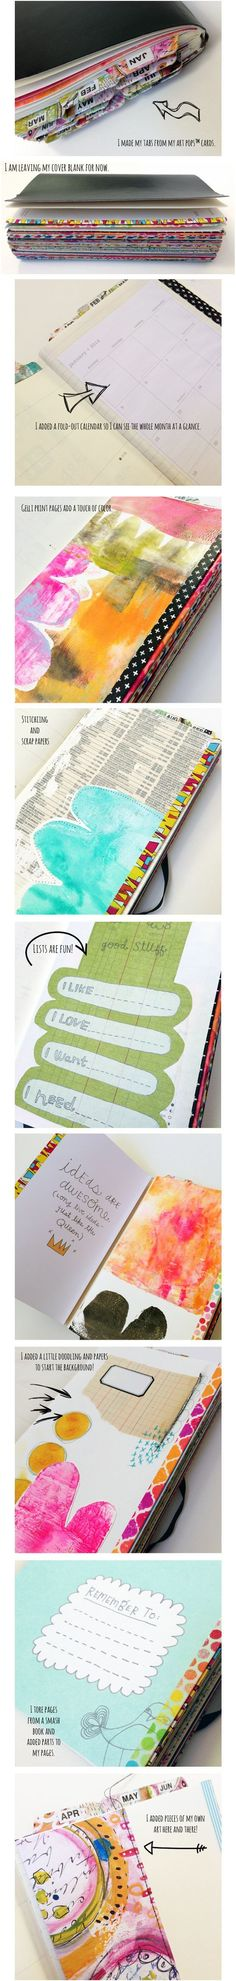 15 diy planners journals to make or print at home share todays the documented life project solutioingenieria Gallery